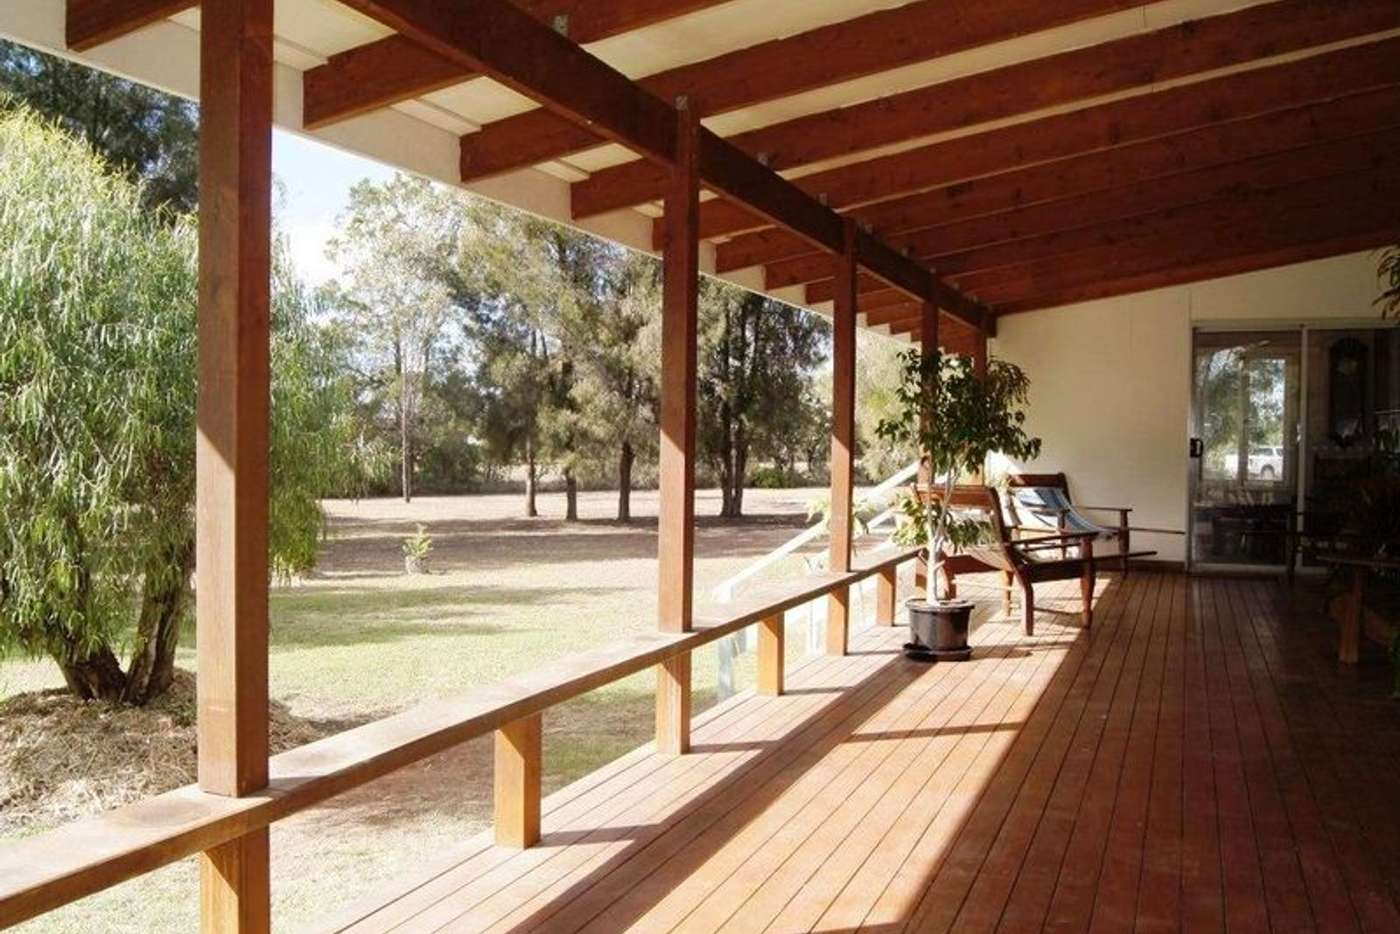 Main view of Homely house listing, 122 Carmichael Street, Chinchilla QLD 4413